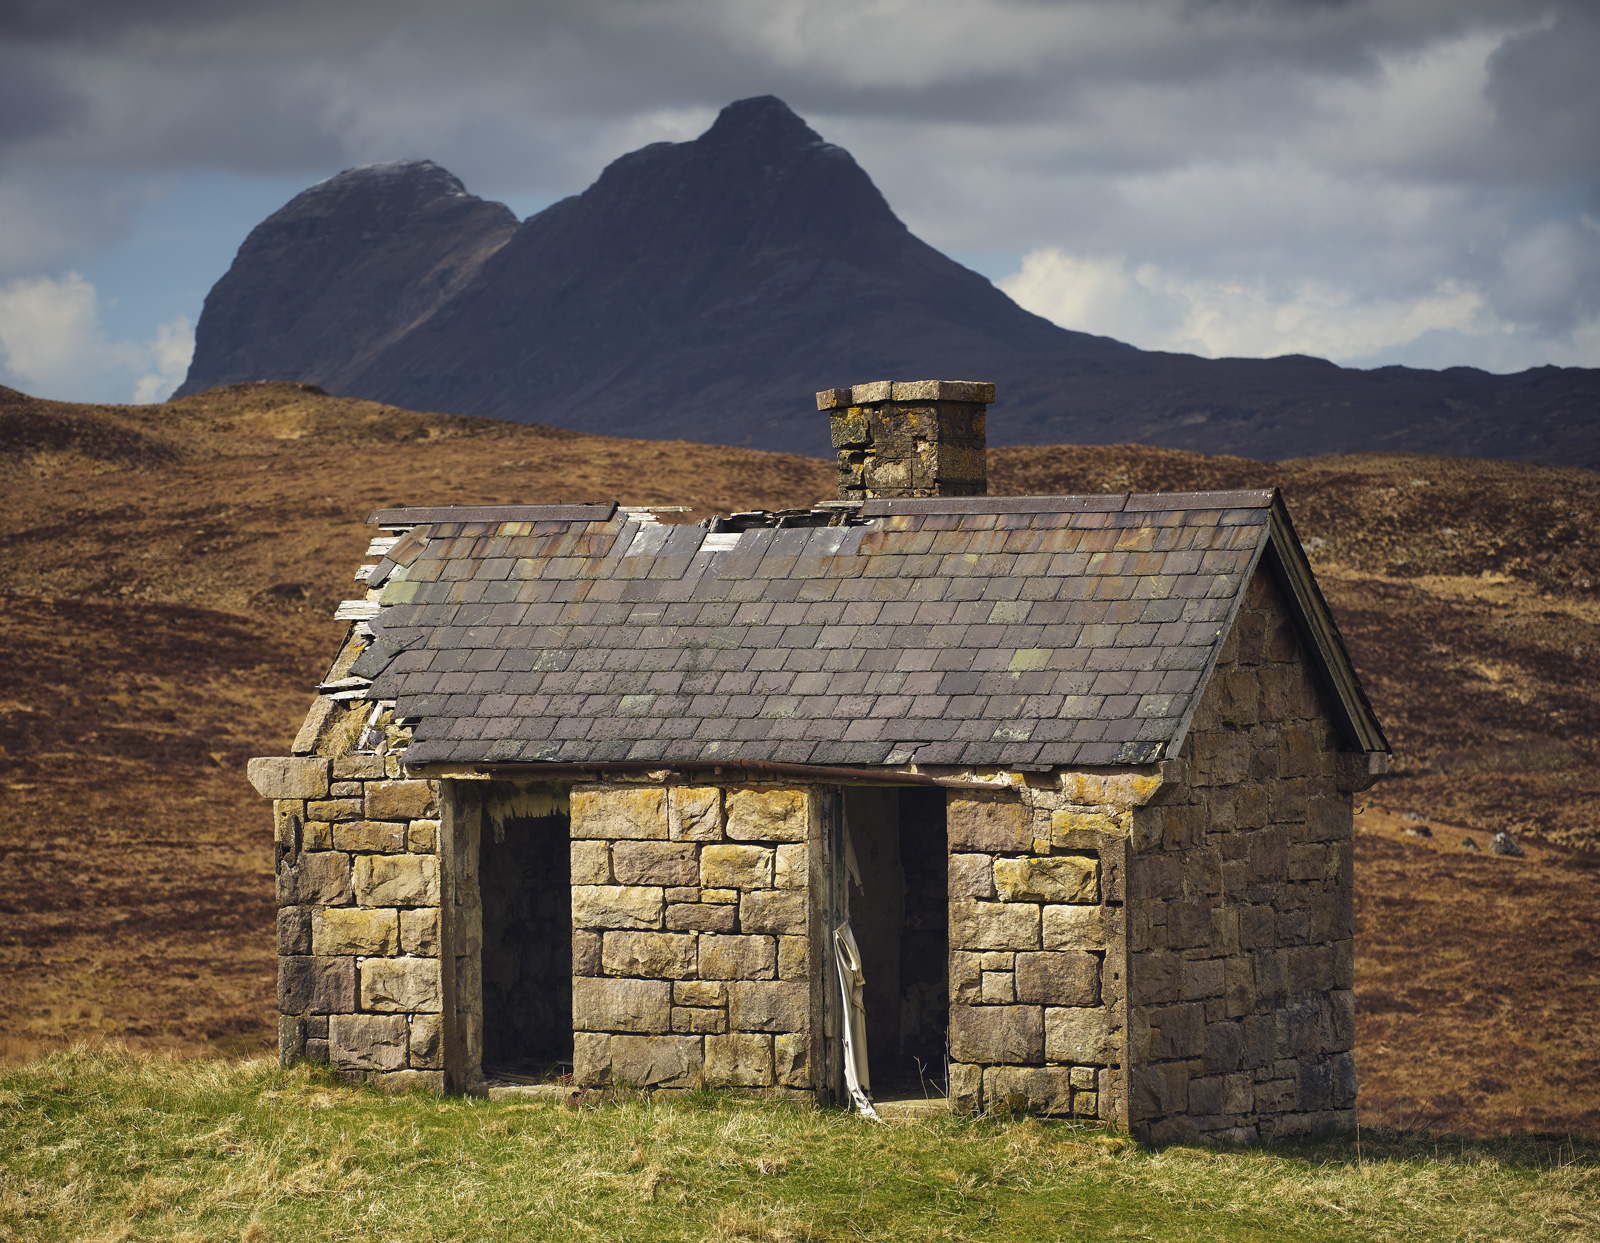 The sunlit weathered derelict stone hut at Elphin in the shadow of Suilven